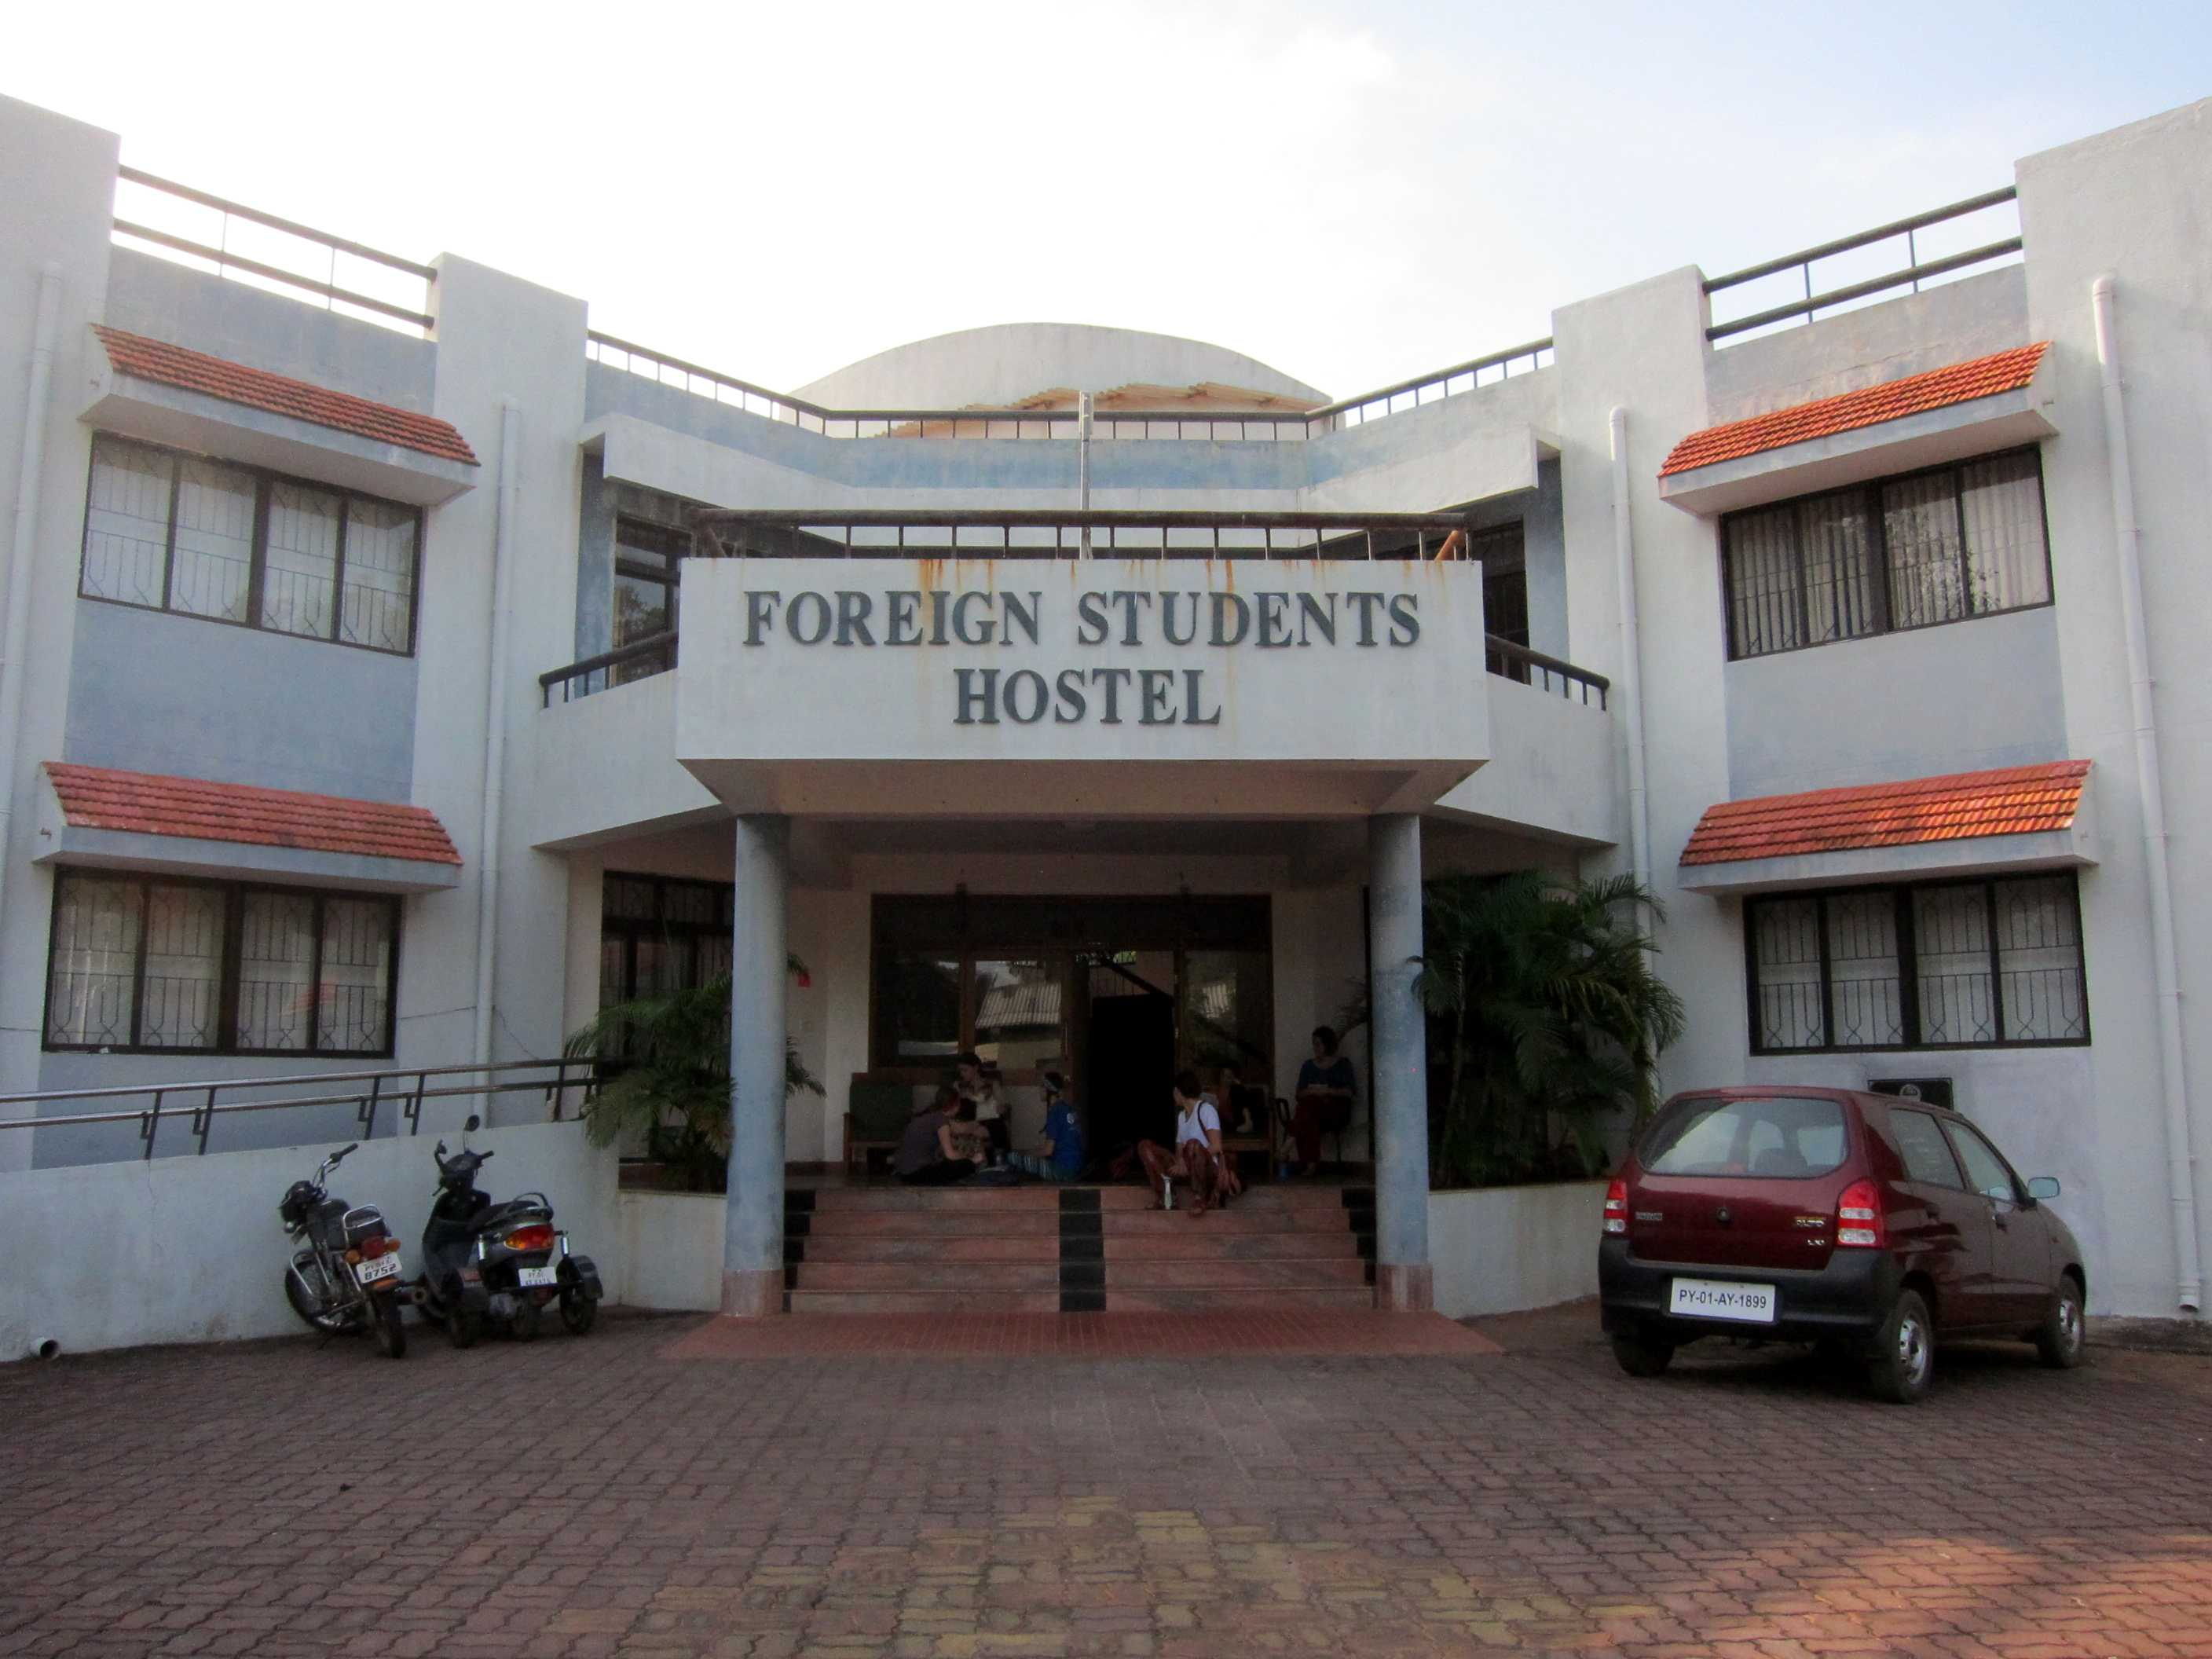 india student Student visas are given to bonafide students to pursue regular studies at recognized institutions in india the visa is single, double or triple entry.